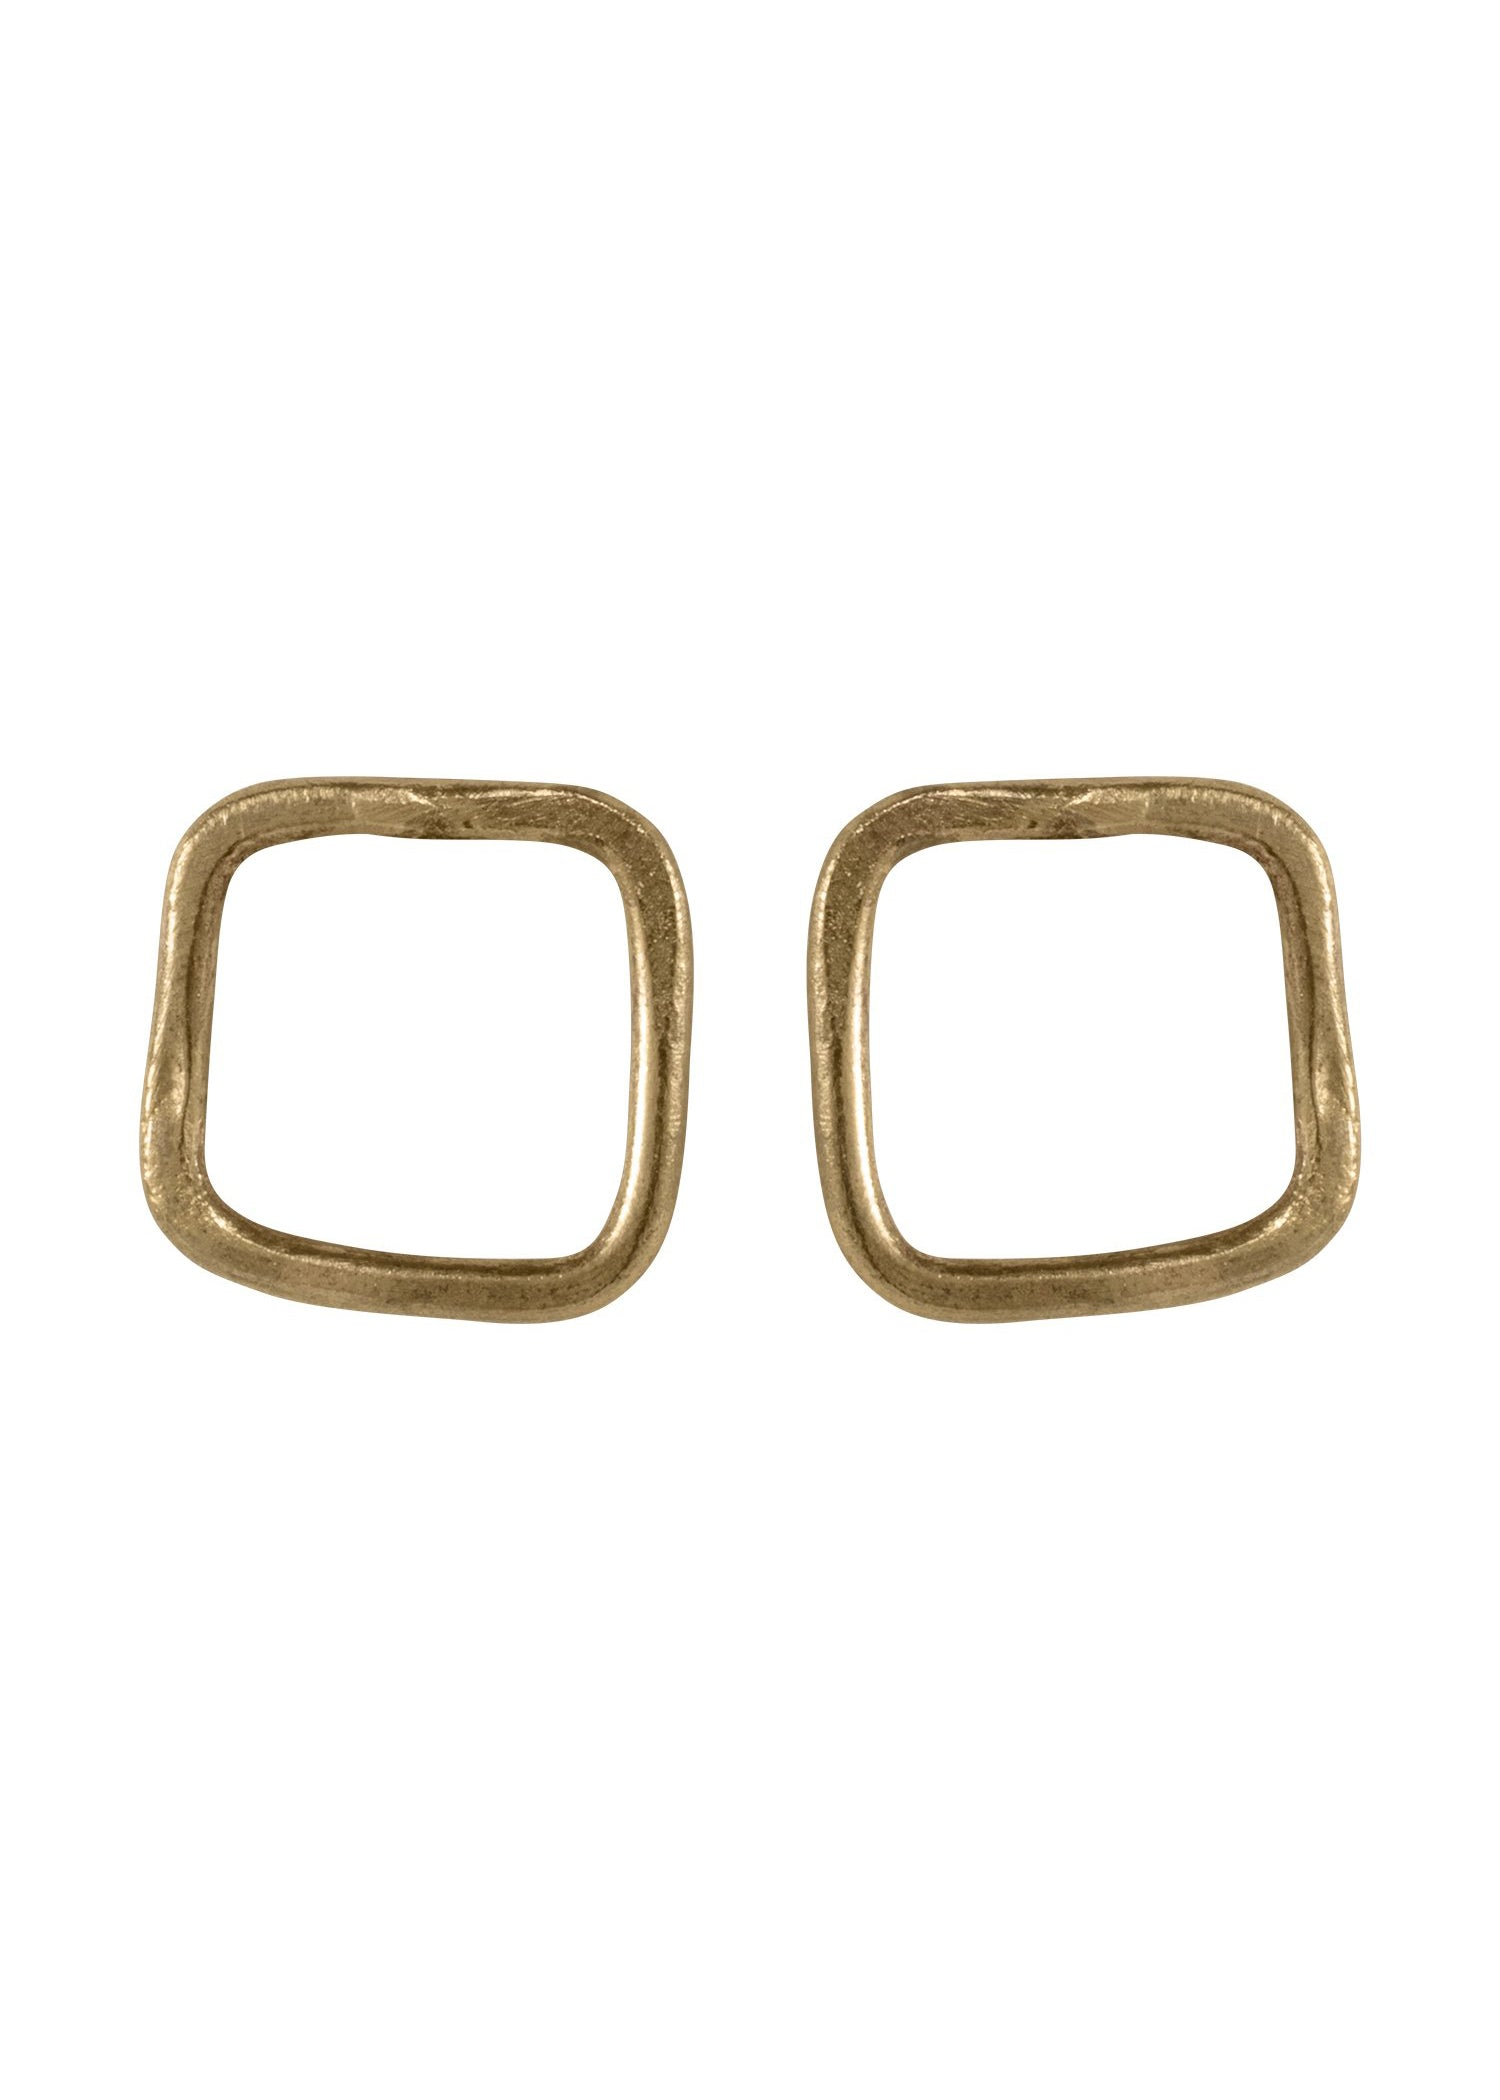 Square Stud Earrings - Brass-Earrings-Sancho's Dress